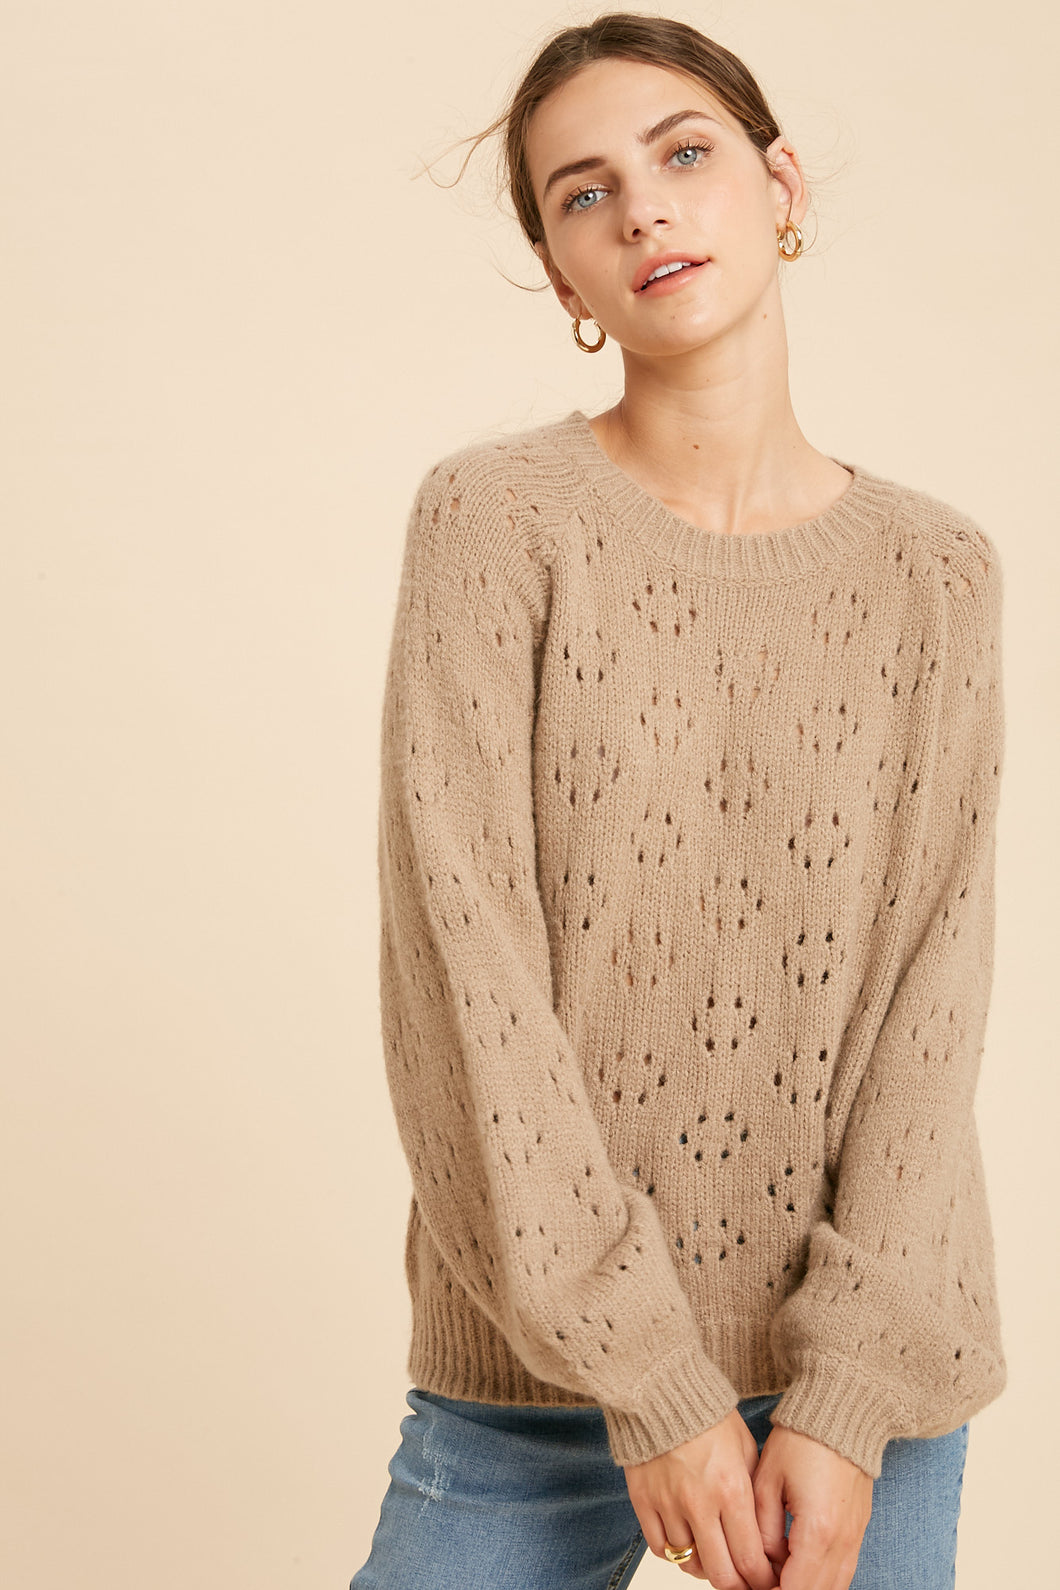 Alison Balloon Sleeve Sweater ** Pre-Order**